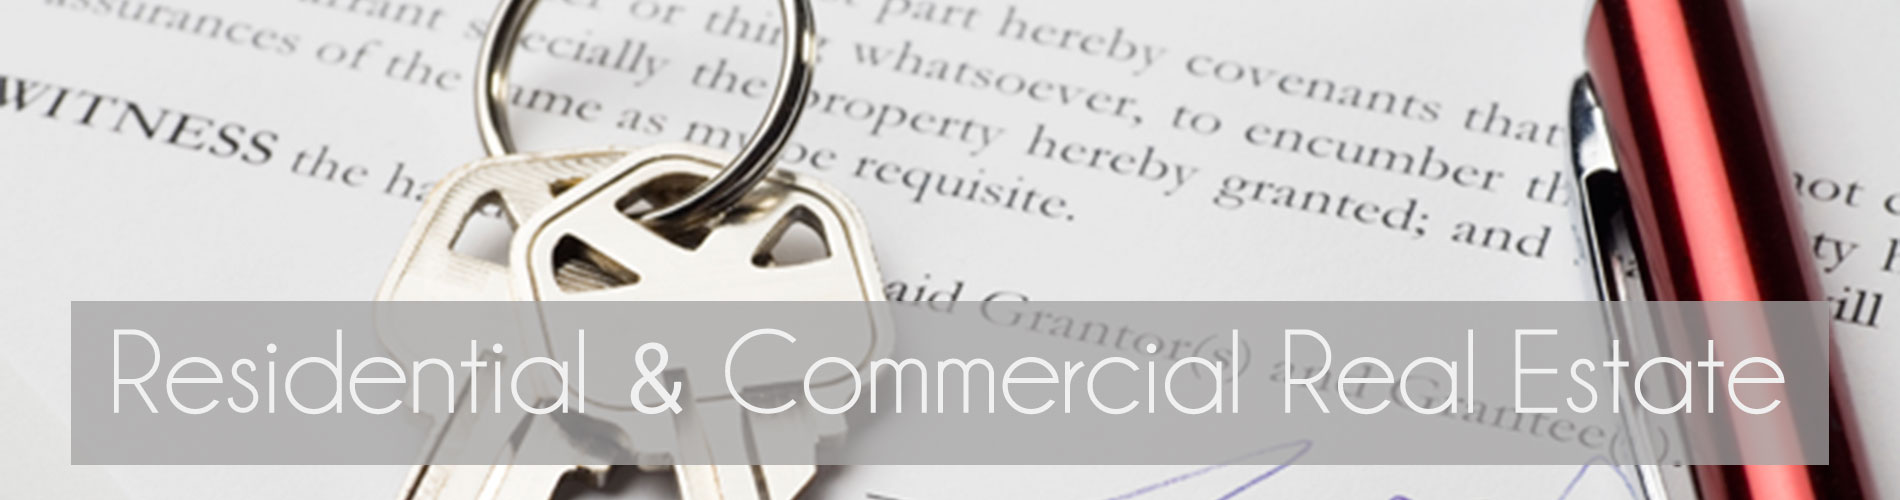 Residential & Commercial Real Estate Law